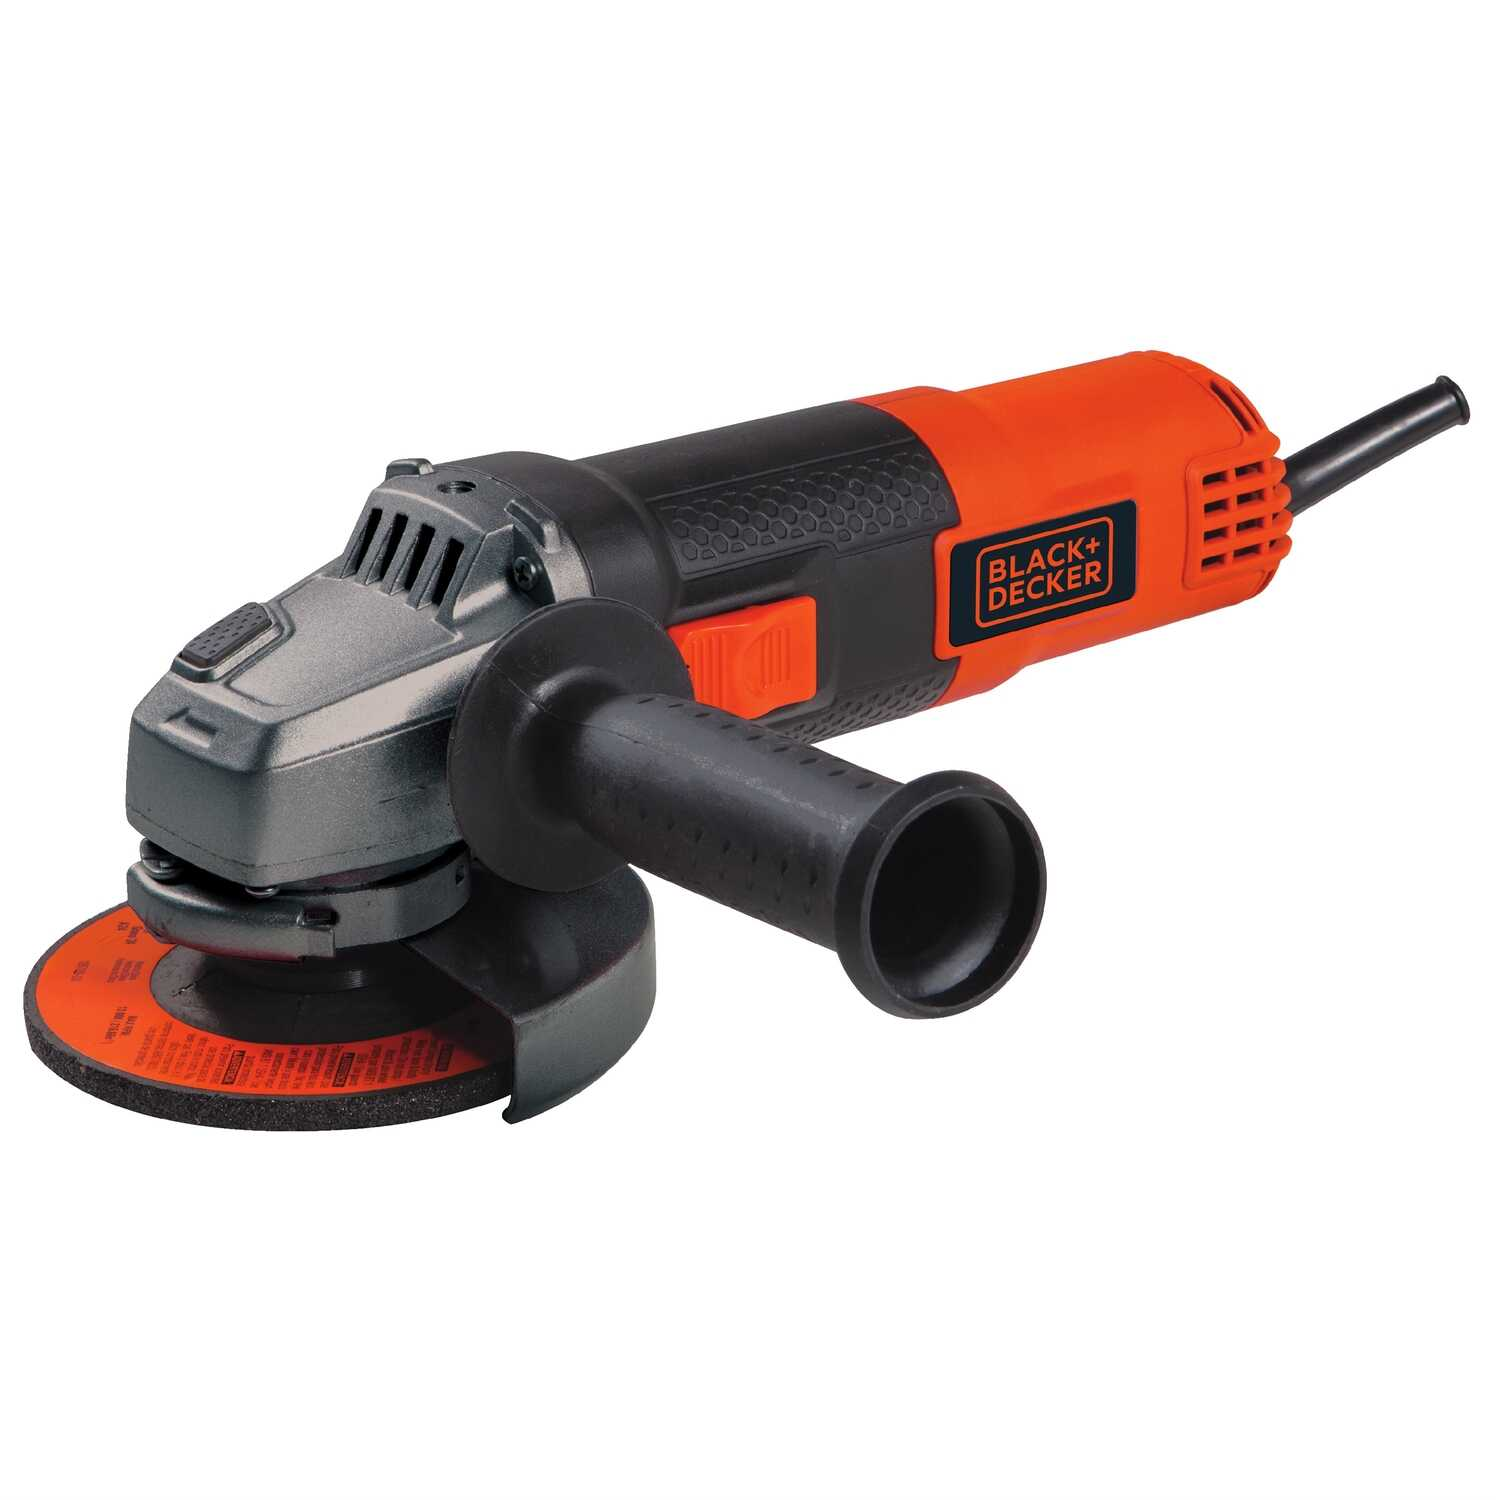 Black and Decker  Corded  6 amps 4-1/2 in. Small Angle Grinder  Bare Tool  Slide  10000 rpm